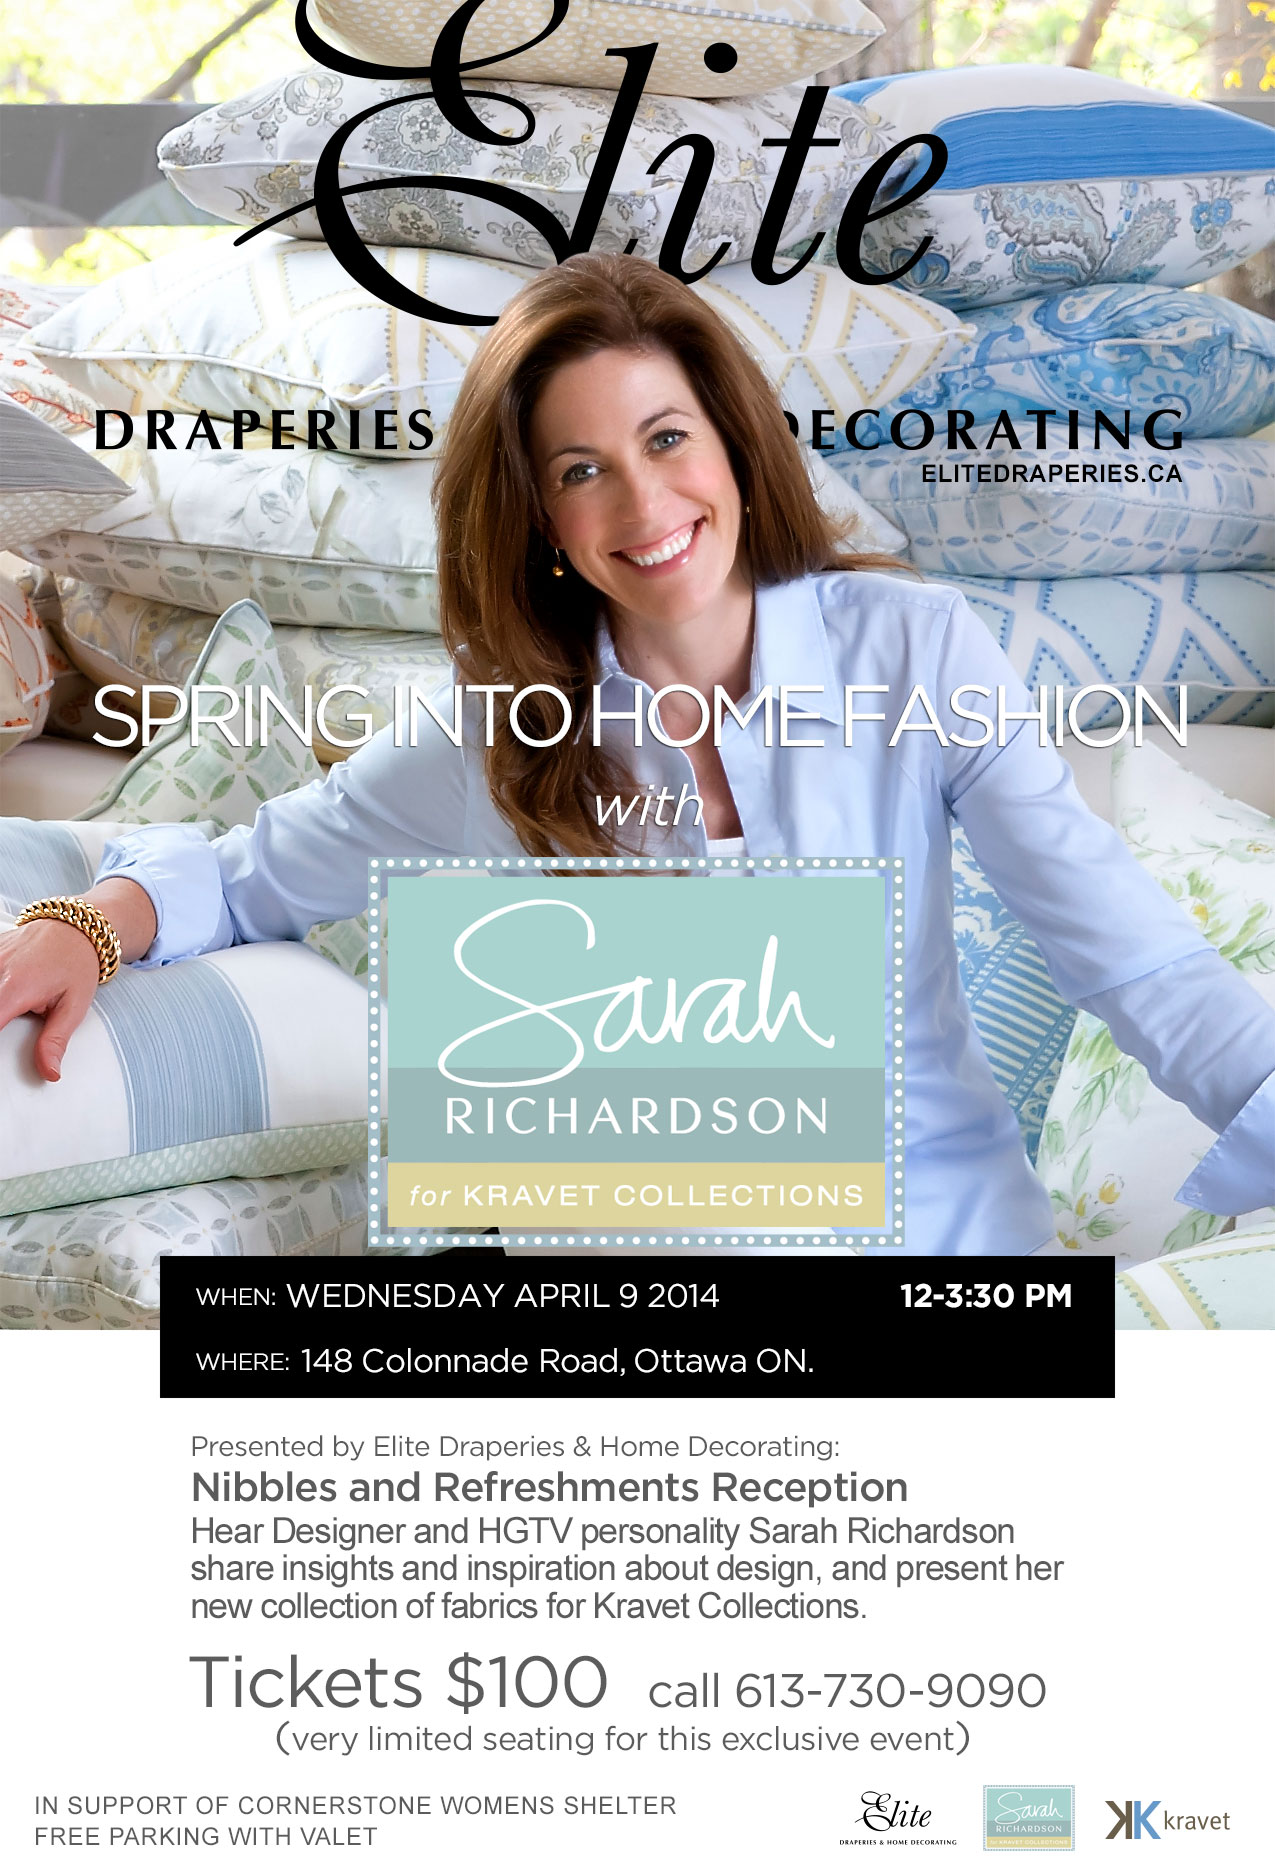 Meet with Sarah Richardson